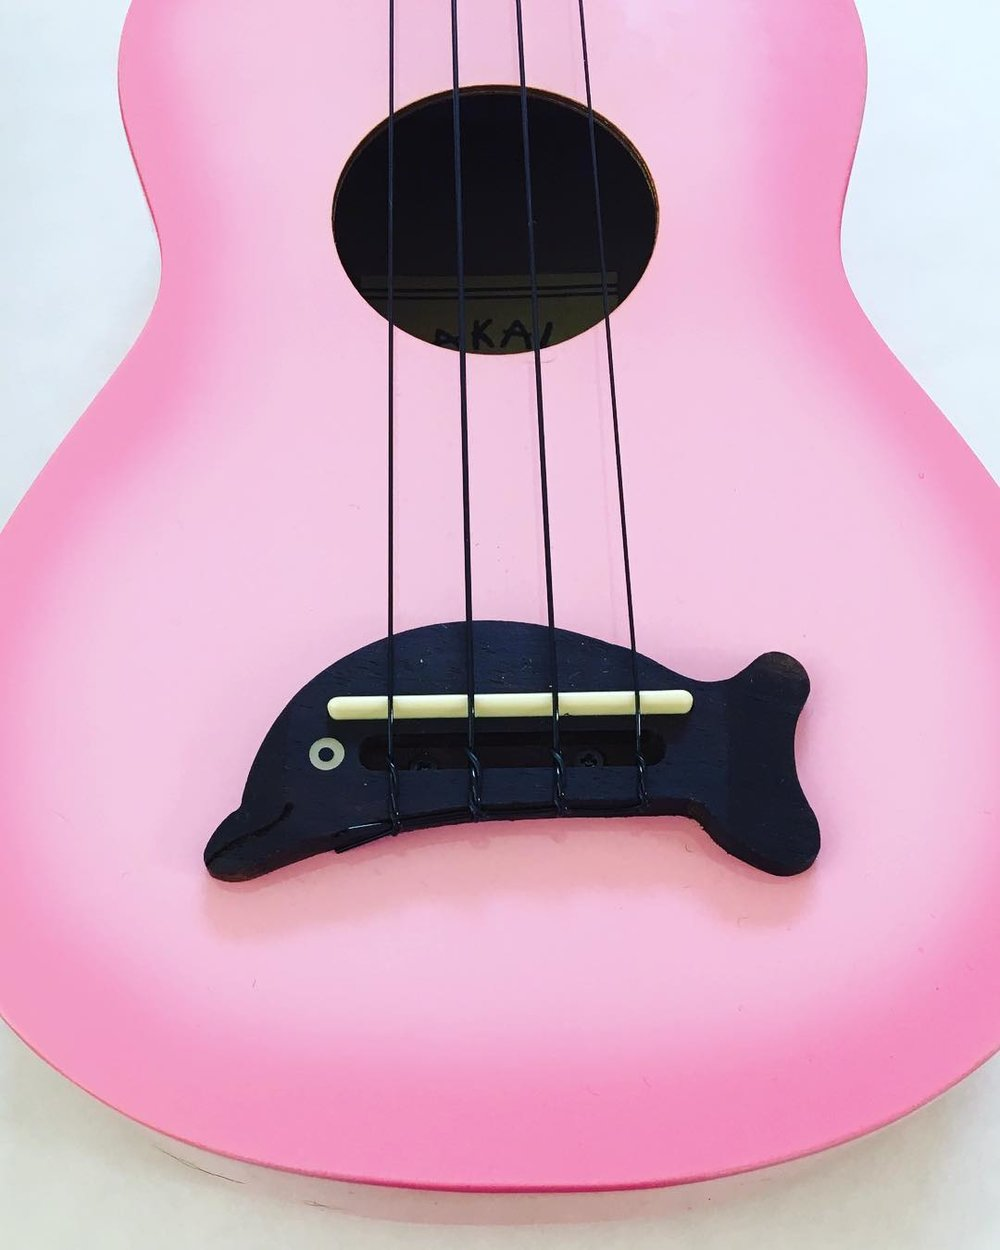 Play an Instrument - Take up a new instrument you've always wanted to learn. Playing an instrument enhances memory, builds confidence, widens your social circle and improves patience. Shown here is our new family member: a pinkalicious ukulele. #littlethings #littleactsbigchange #learning #ukulele #somethingnew #pink #marincounty #inspiration #instagood 🎶